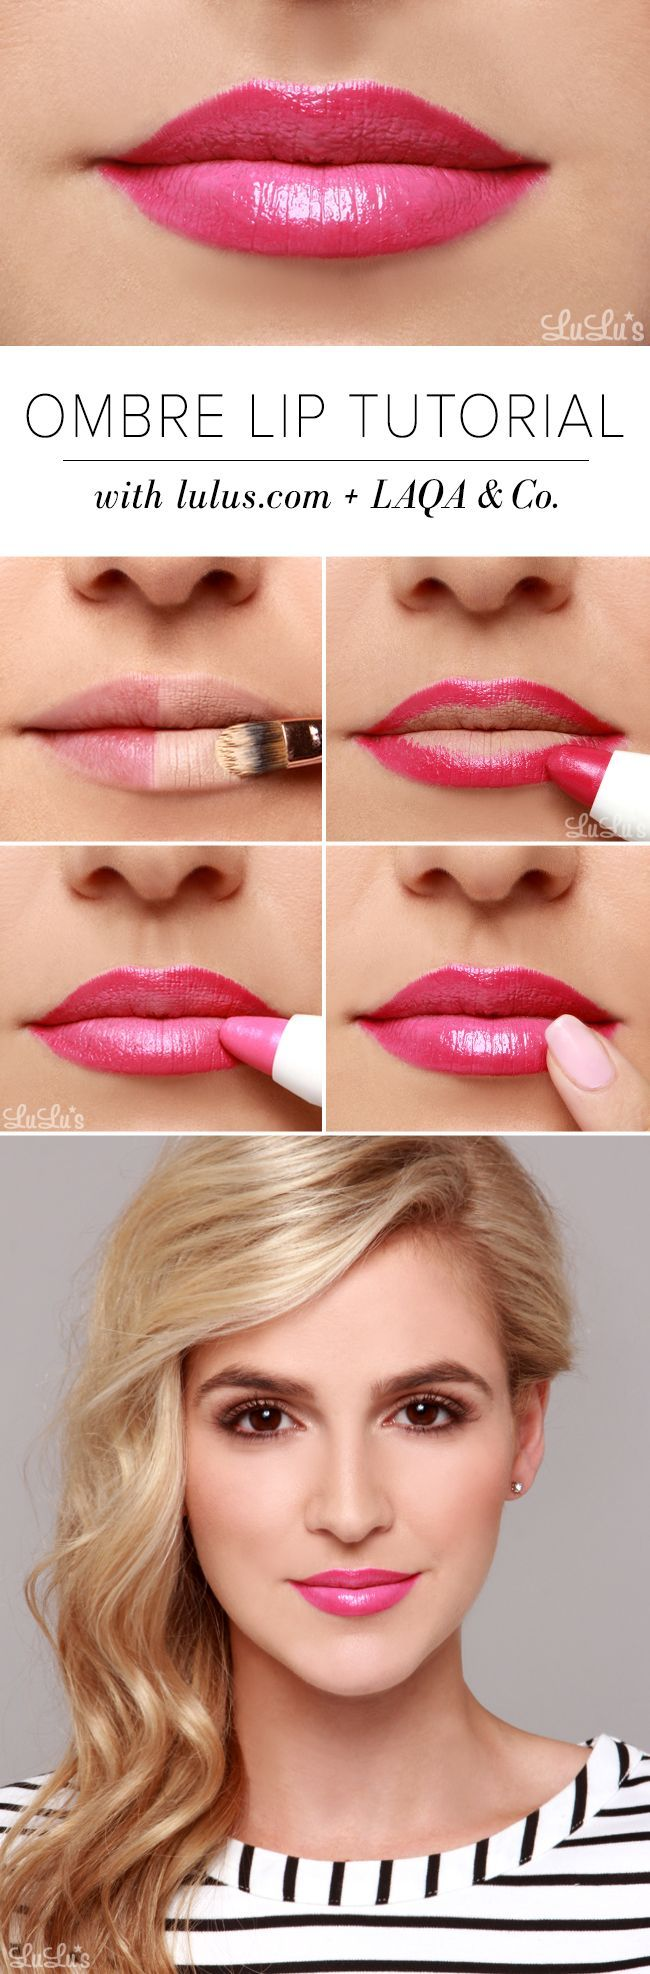 Beauty How-To: Pink Ombre Lip Tutorial